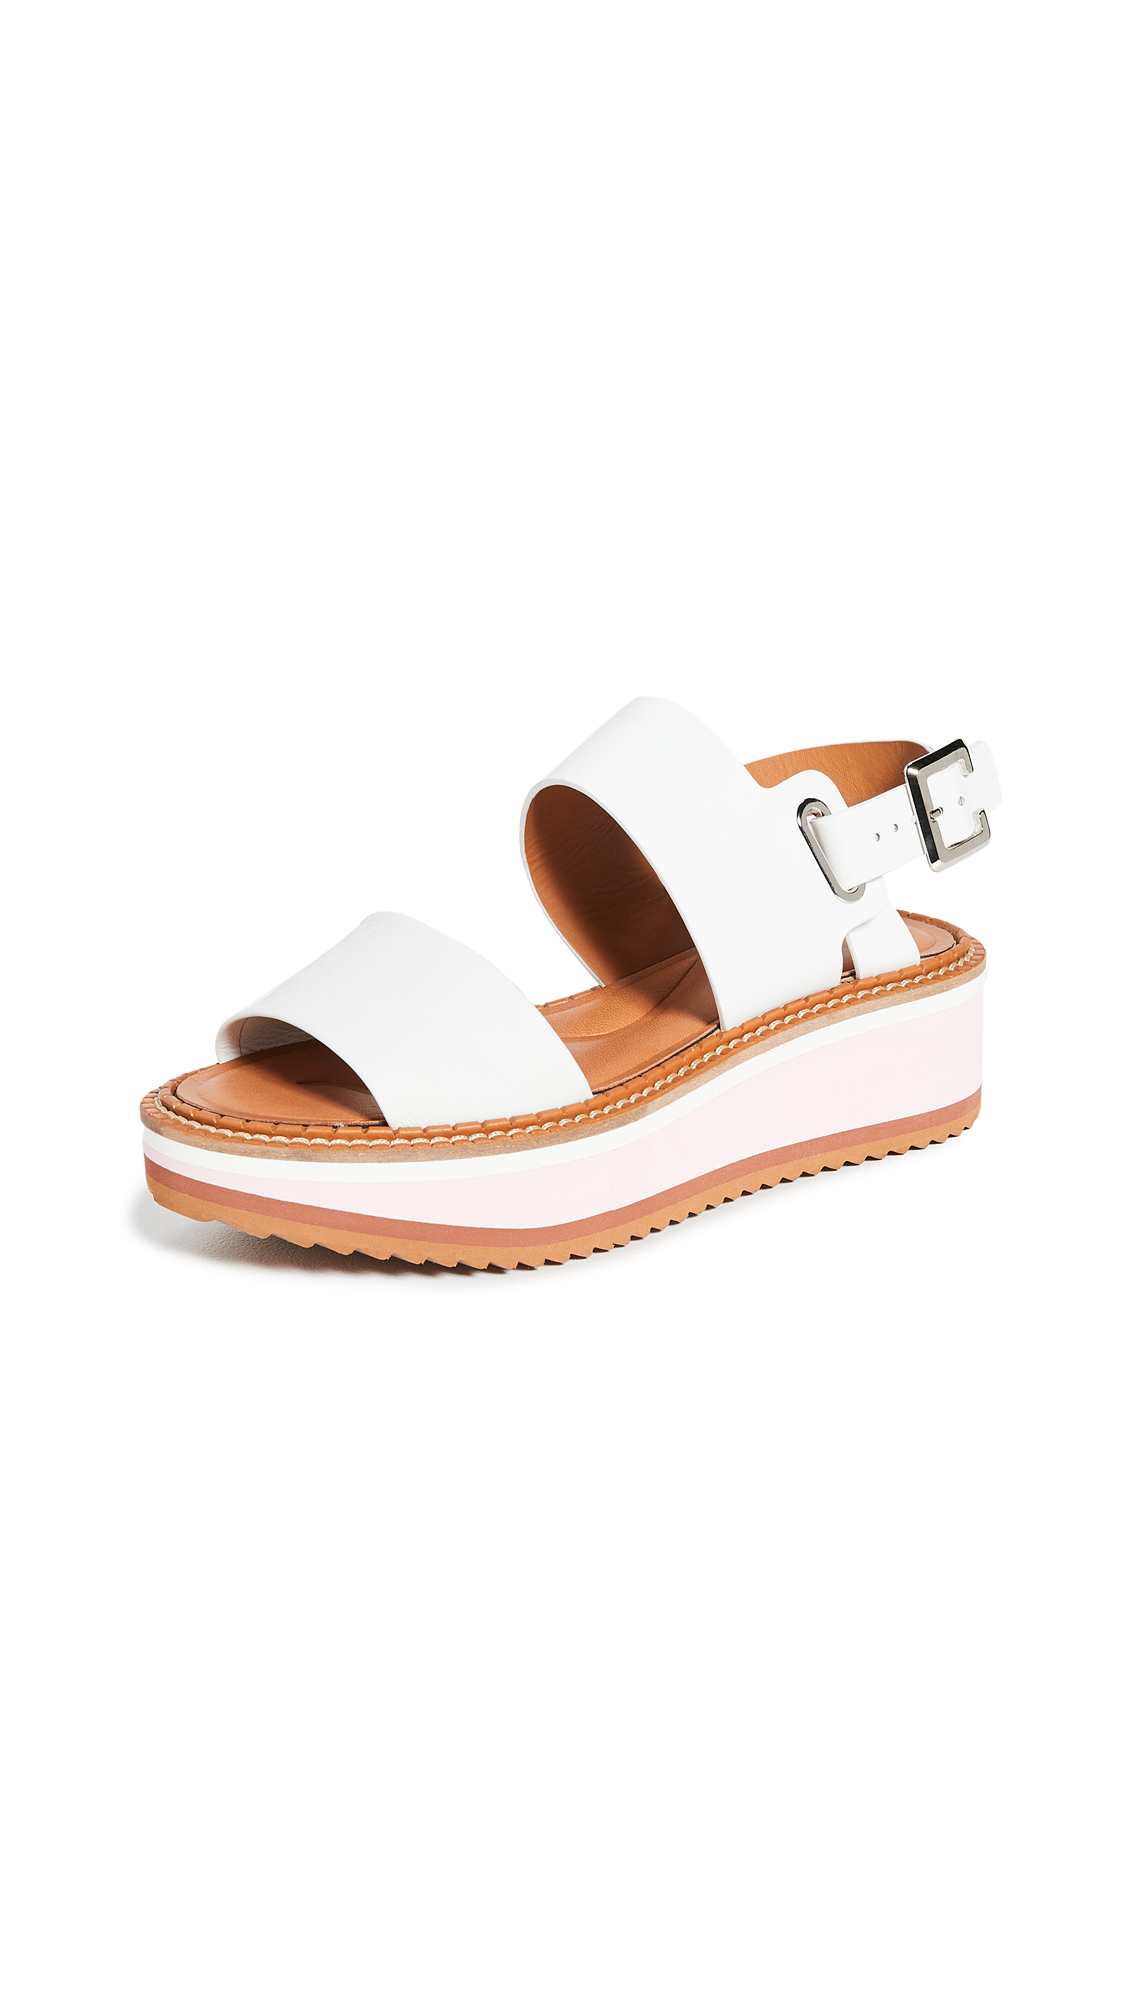 Buy Clergerie Fleur Sandals online, shop Clergerie